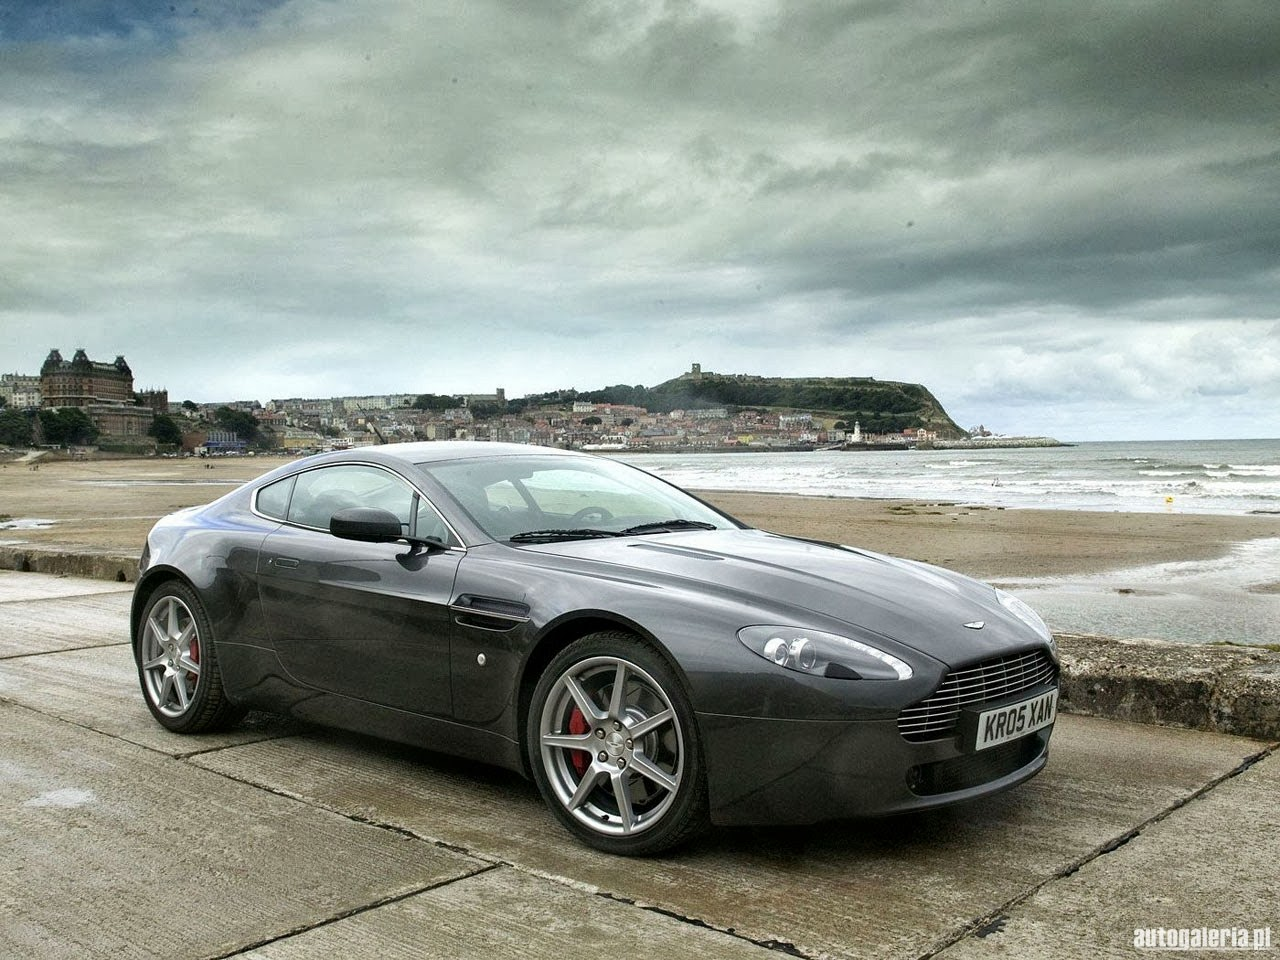 2014 aston martin v8 vantage sport exotic coupe wallpaper prices worldwide for cars bikes. Black Bedroom Furniture Sets. Home Design Ideas